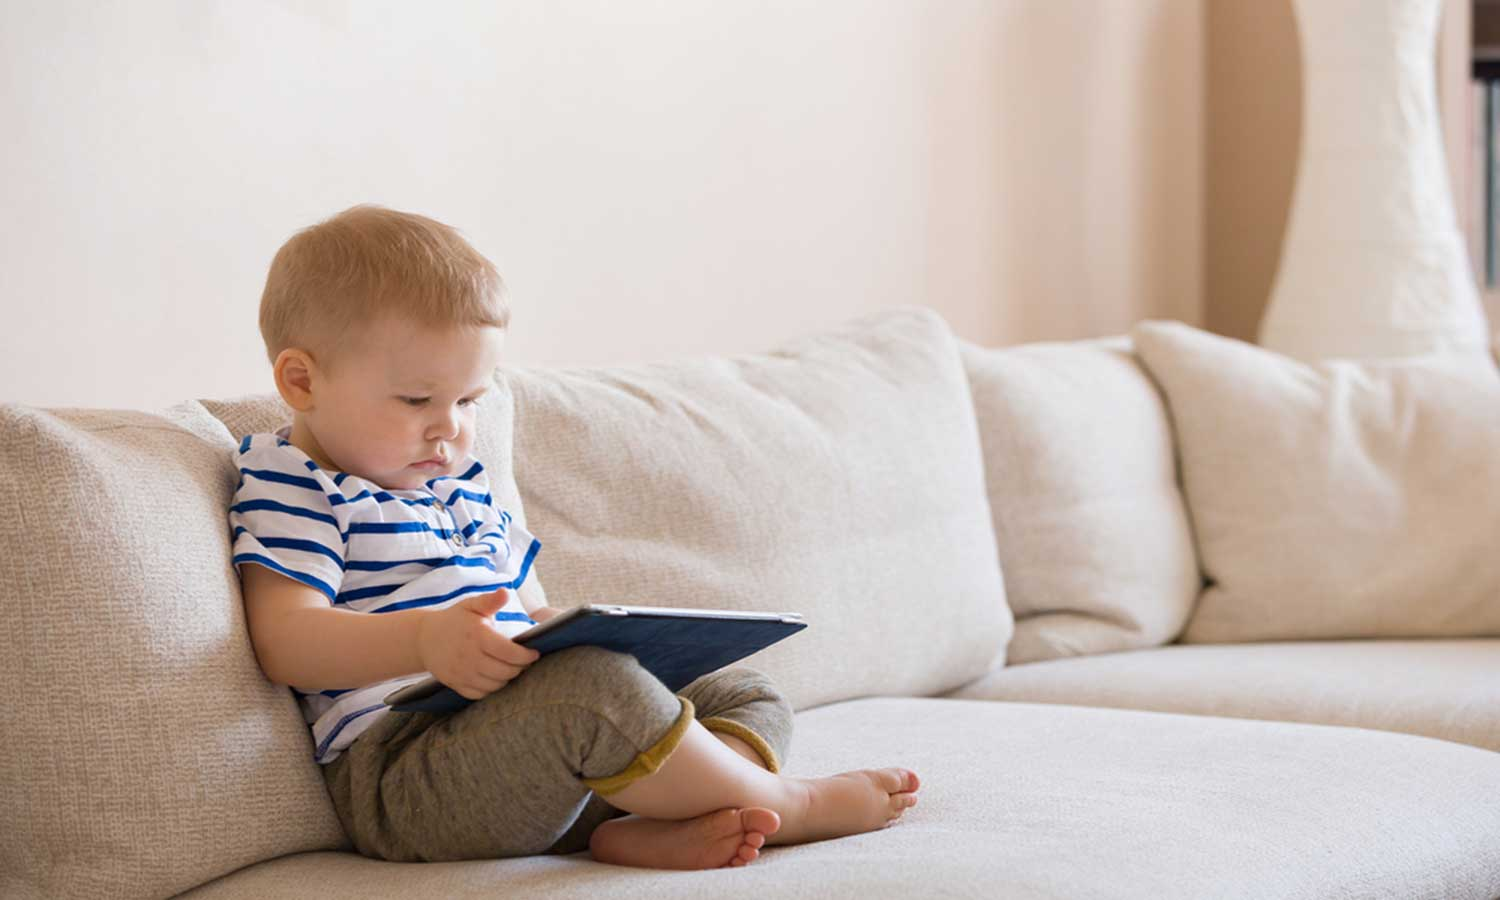 toddlers-tablet